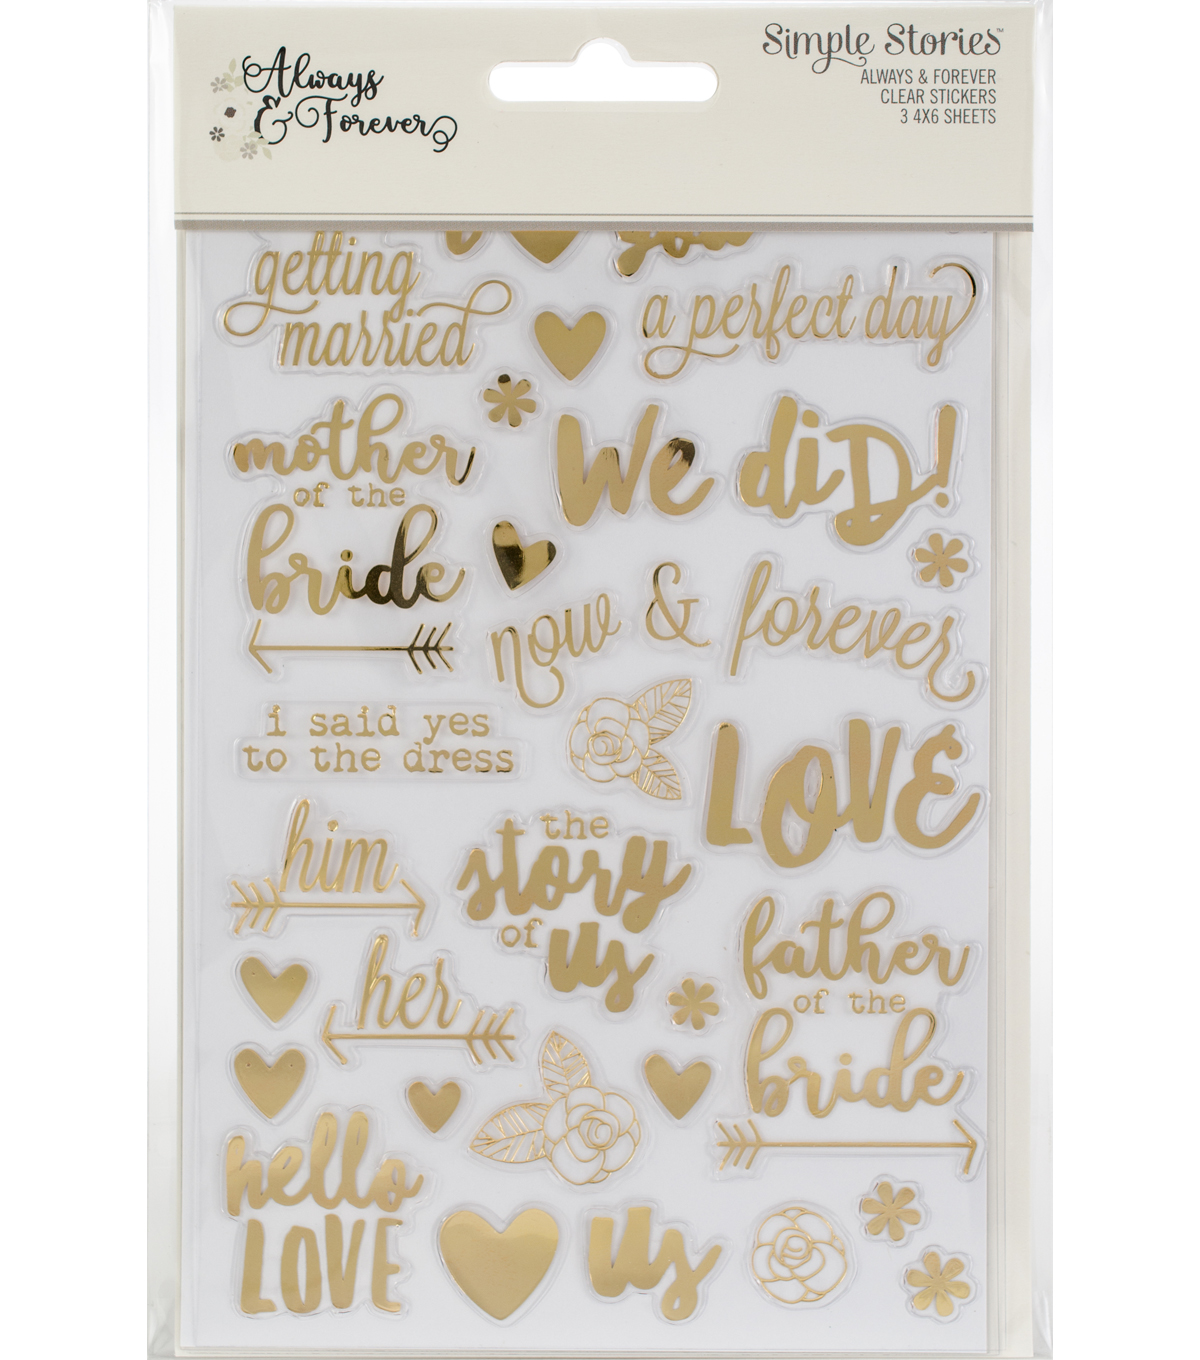 Simple Stories Always & Forever 3 pk 4\u0027\u0027x6\u0027\u0027 Clear Sticker Sheets